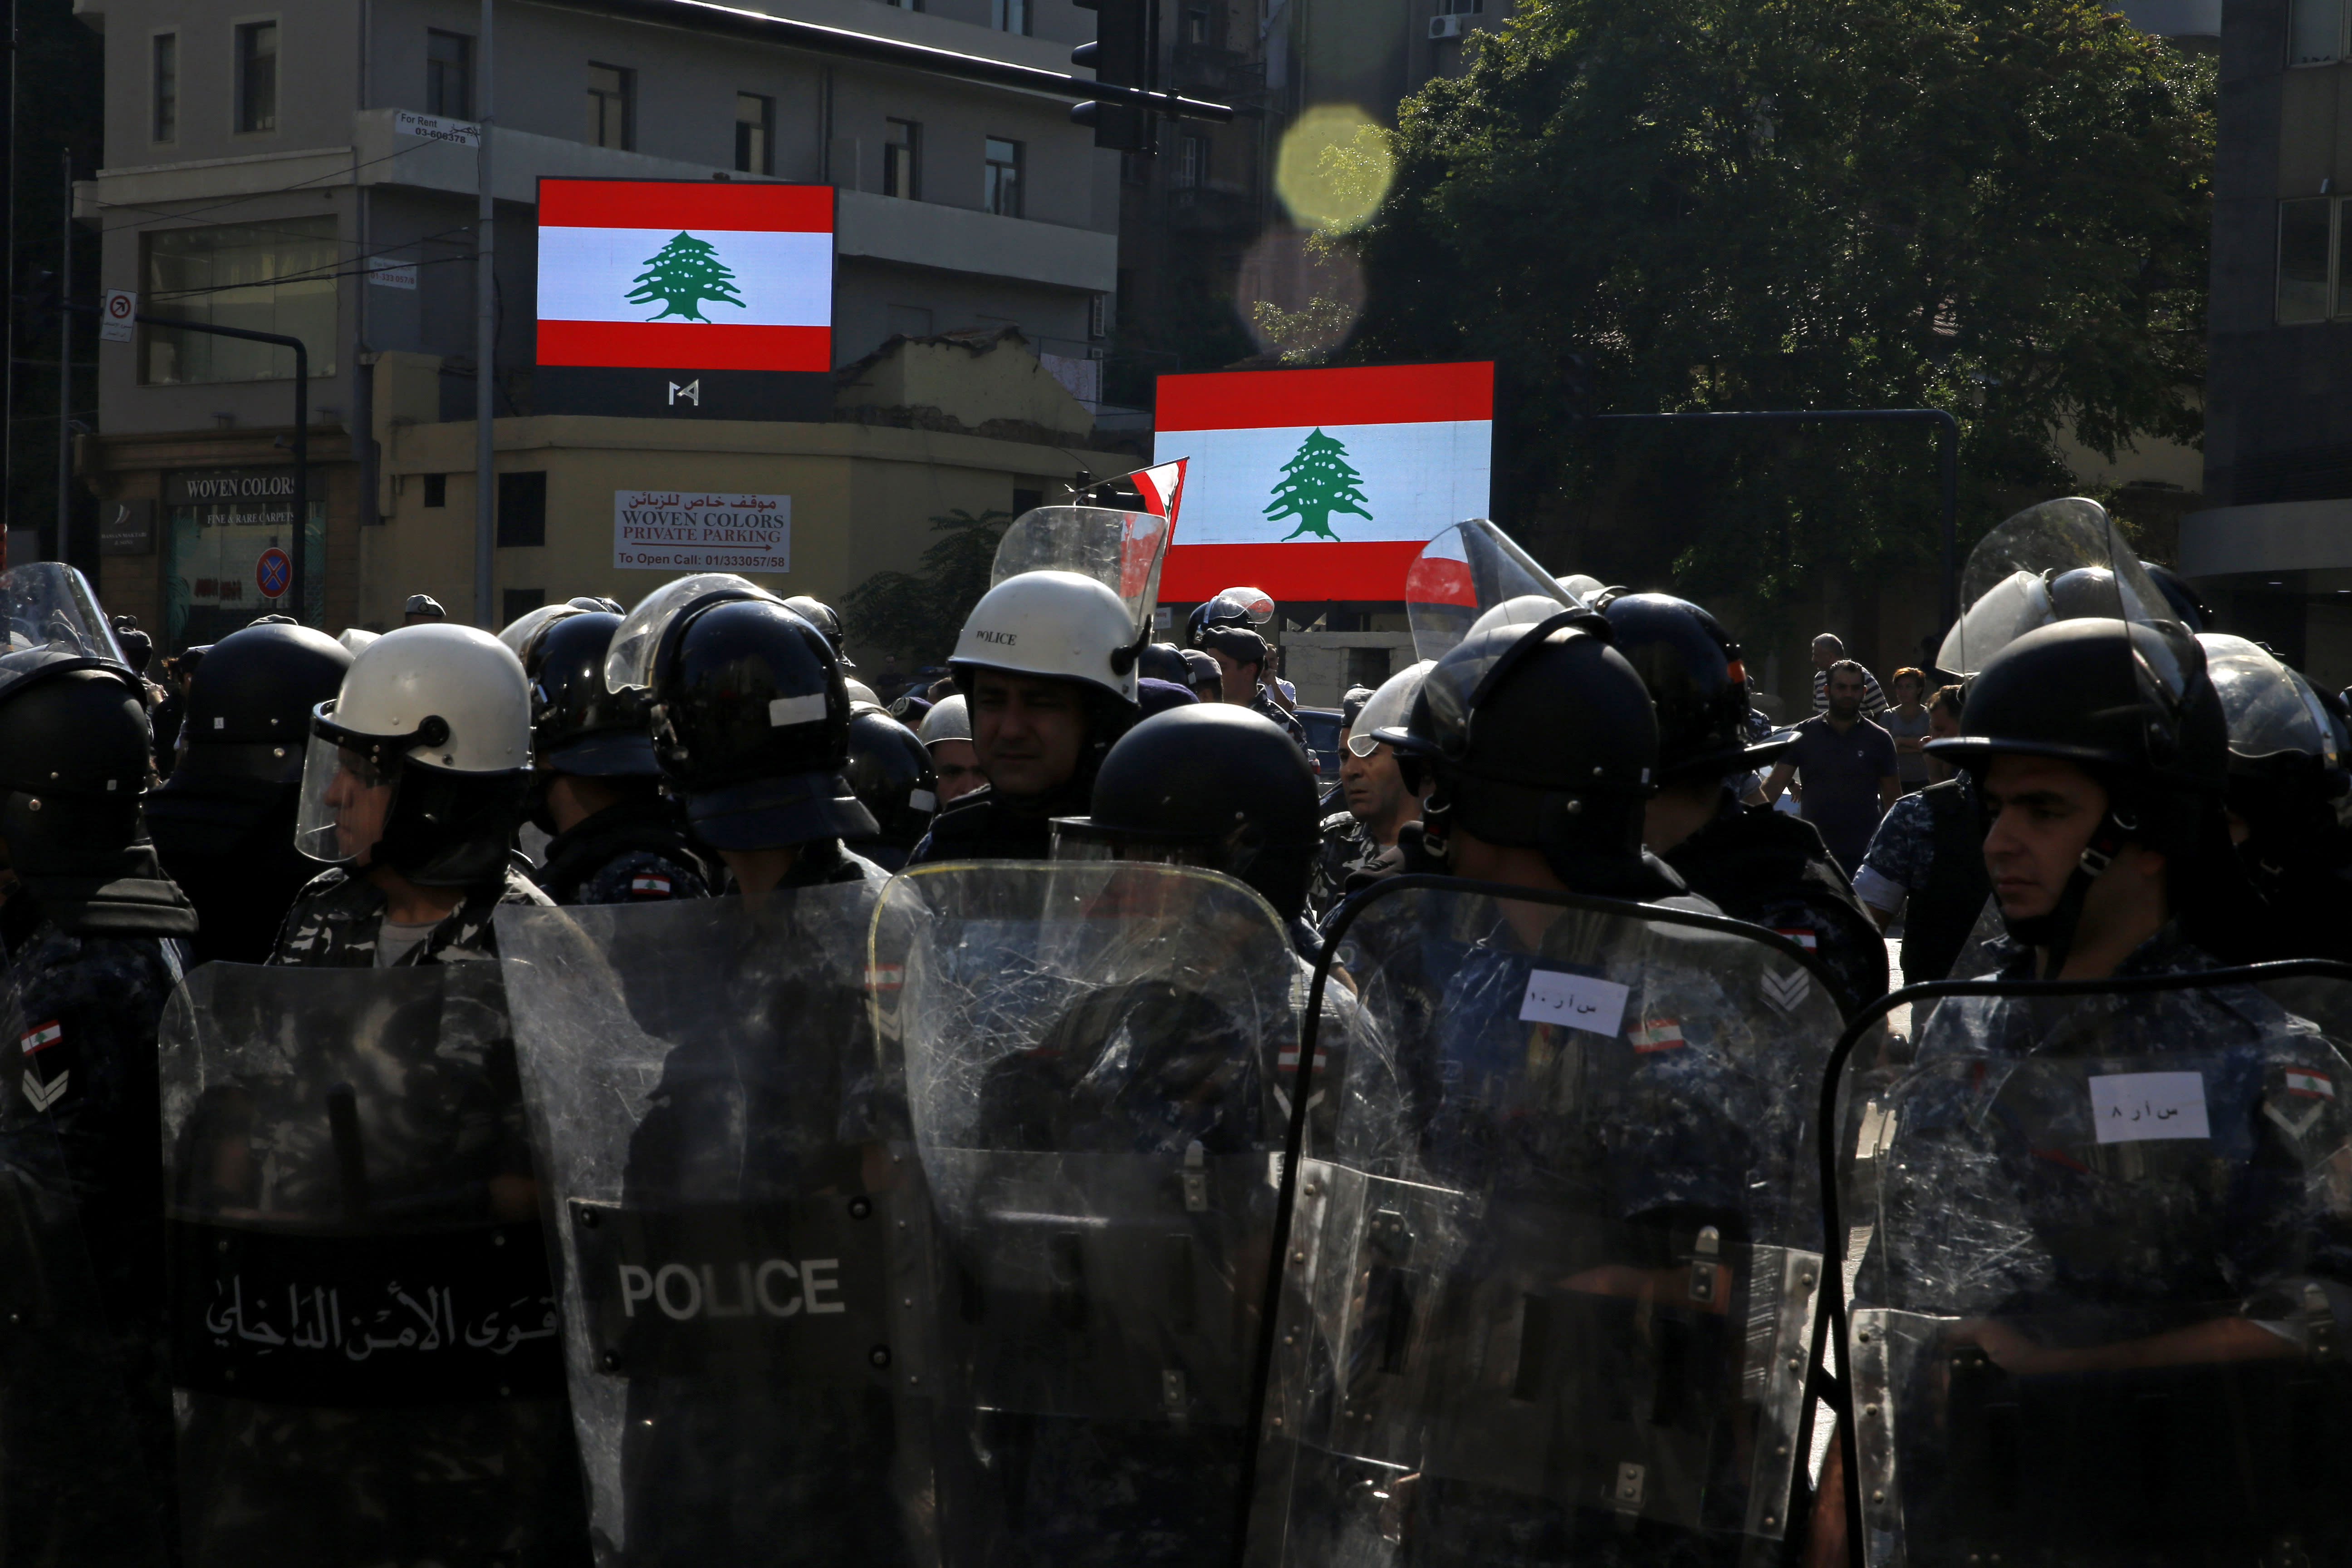 Riot police stand guard after they open a road in Beirut, Lebanon, Thursday, Oct. 31, 2019. Army units and riot police took down barriers and tents set up in the middle of highways and major intersections Thursday. (AP Photo/Bilal Hussein)